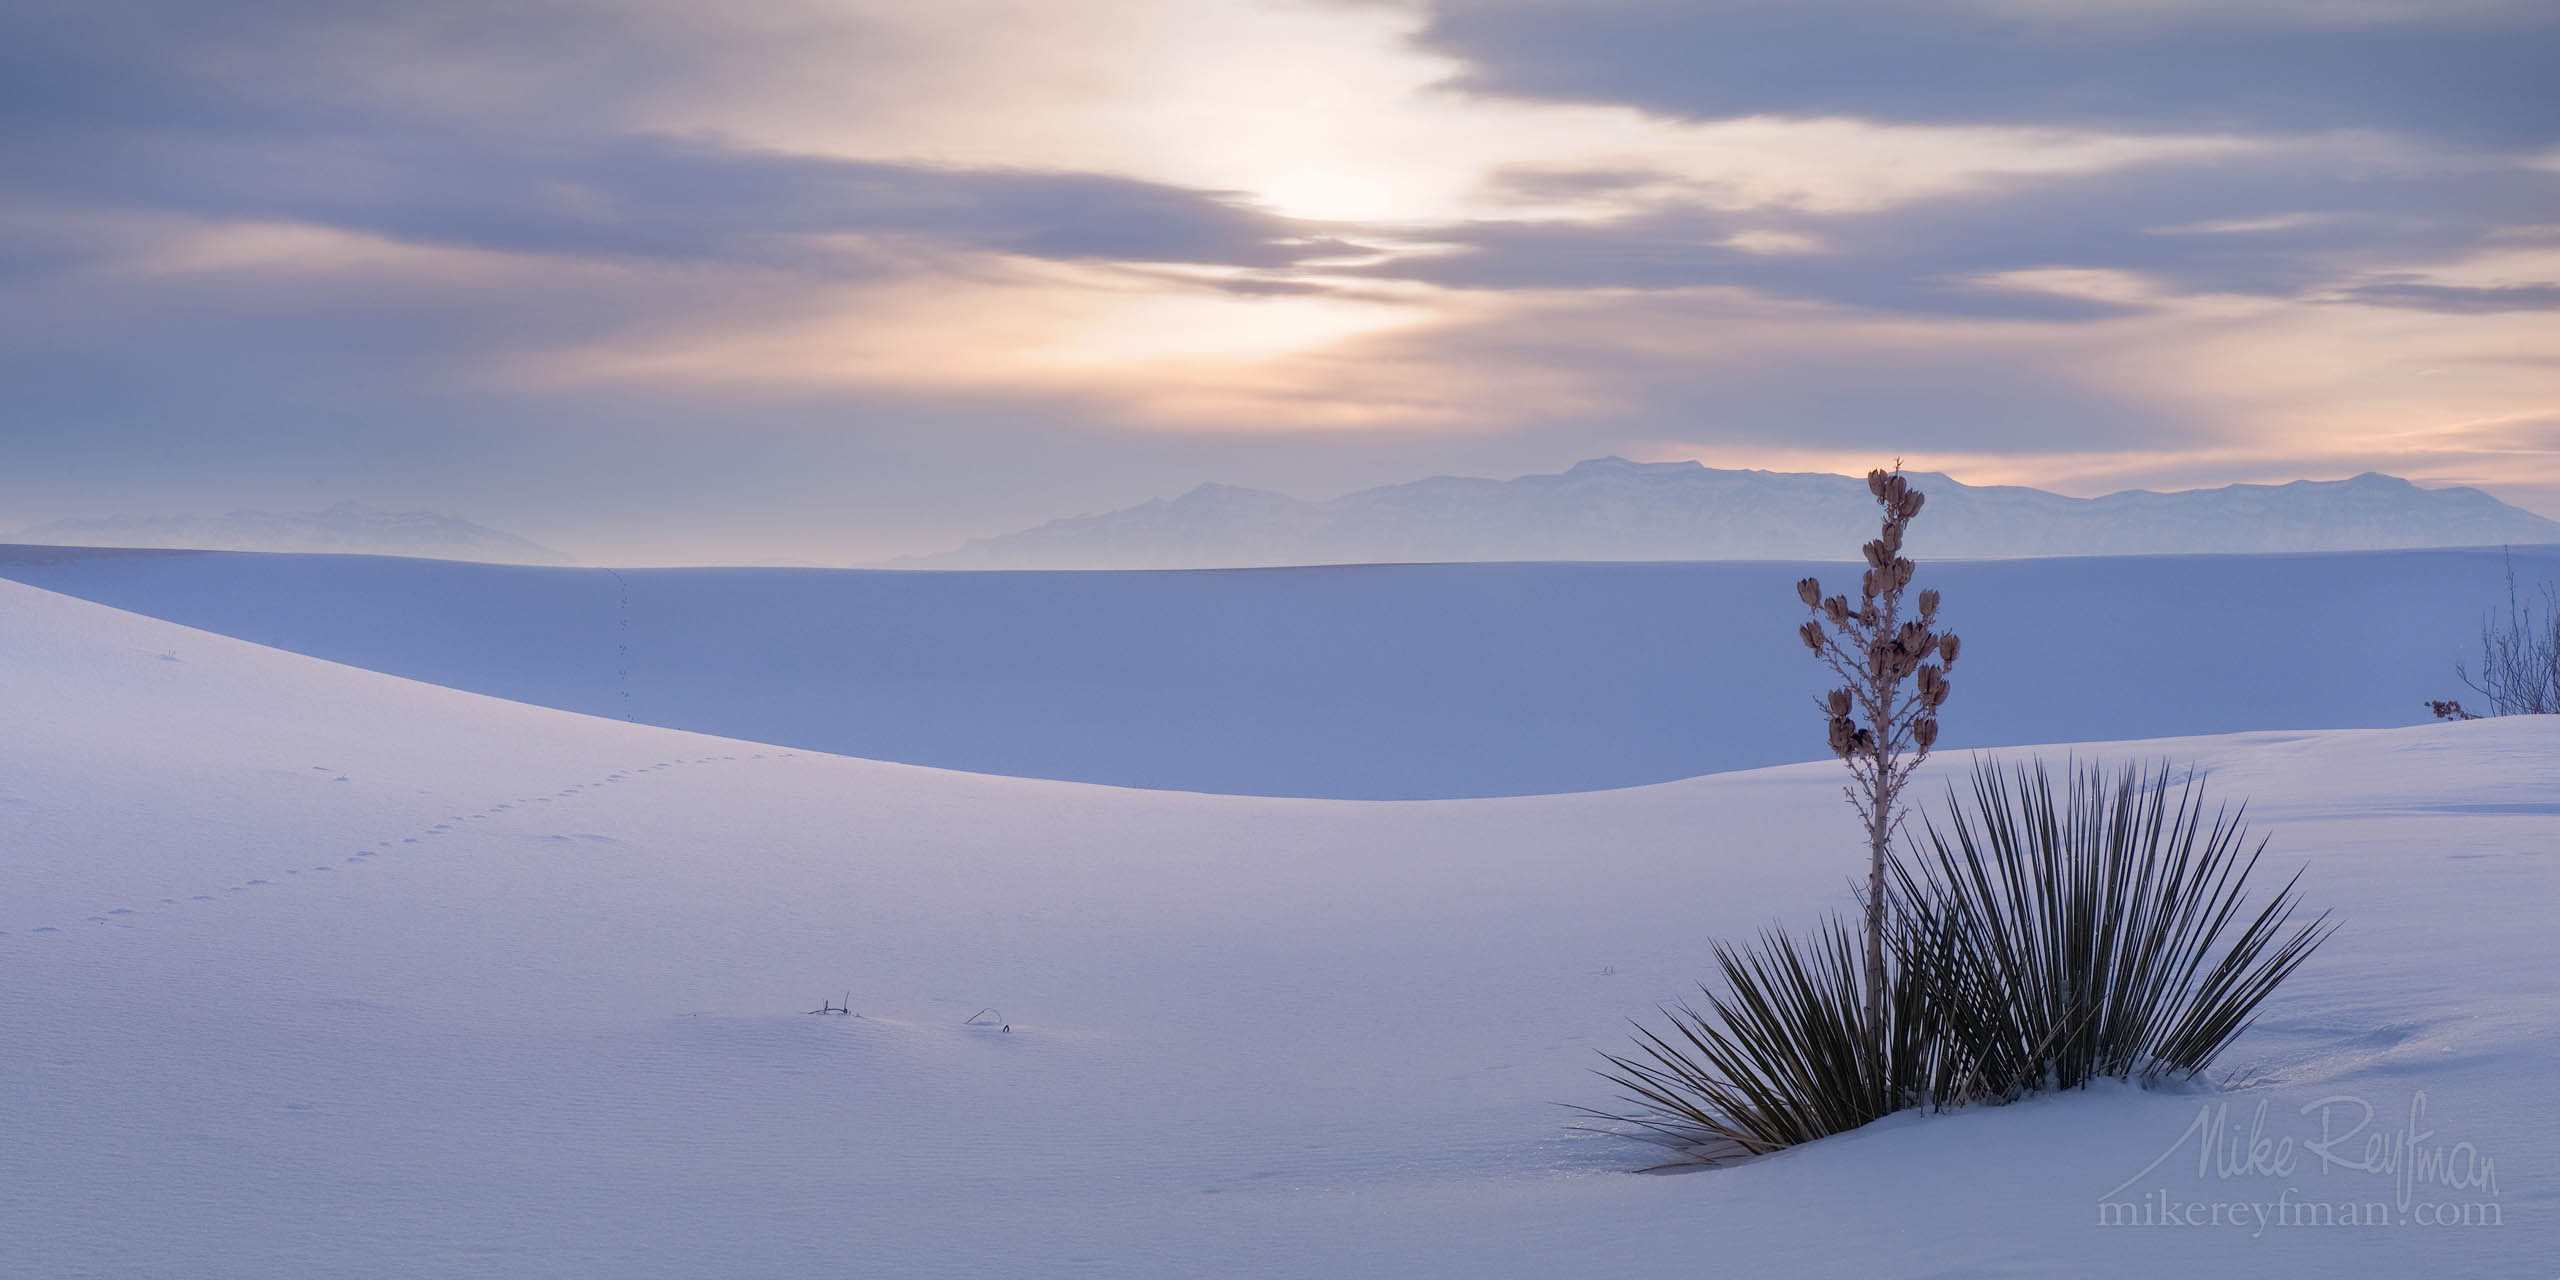 White over White. Fresh snow in White Sands National Monumen, New Mexico P12-MRM3X8661 - Selected panoramic images with 2:1 aspect ratio - Mike Reyfman Photography